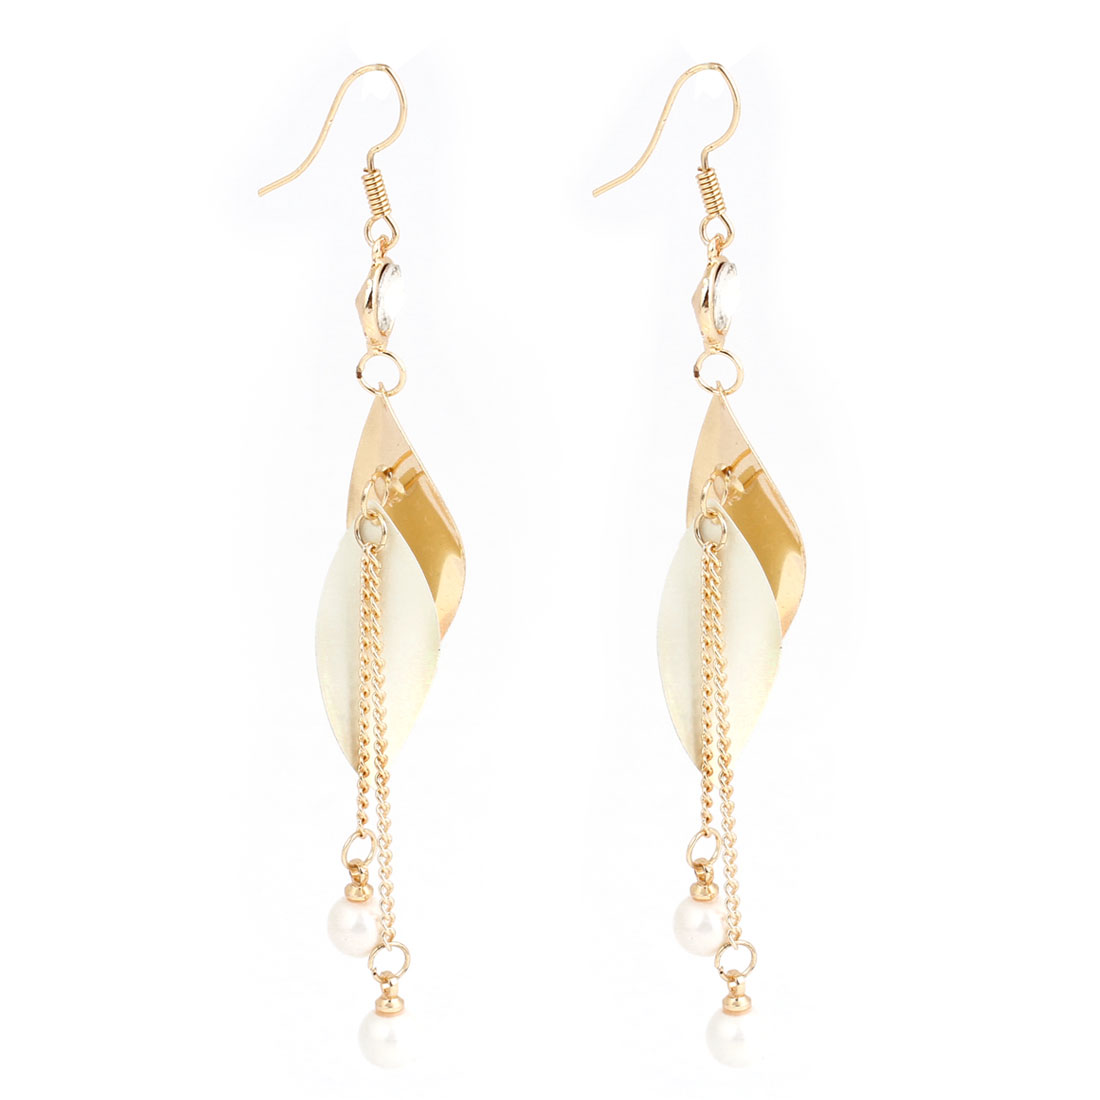 Metal Gold Tone Chain Pendant Dangling Fish Hook Earrings for Women